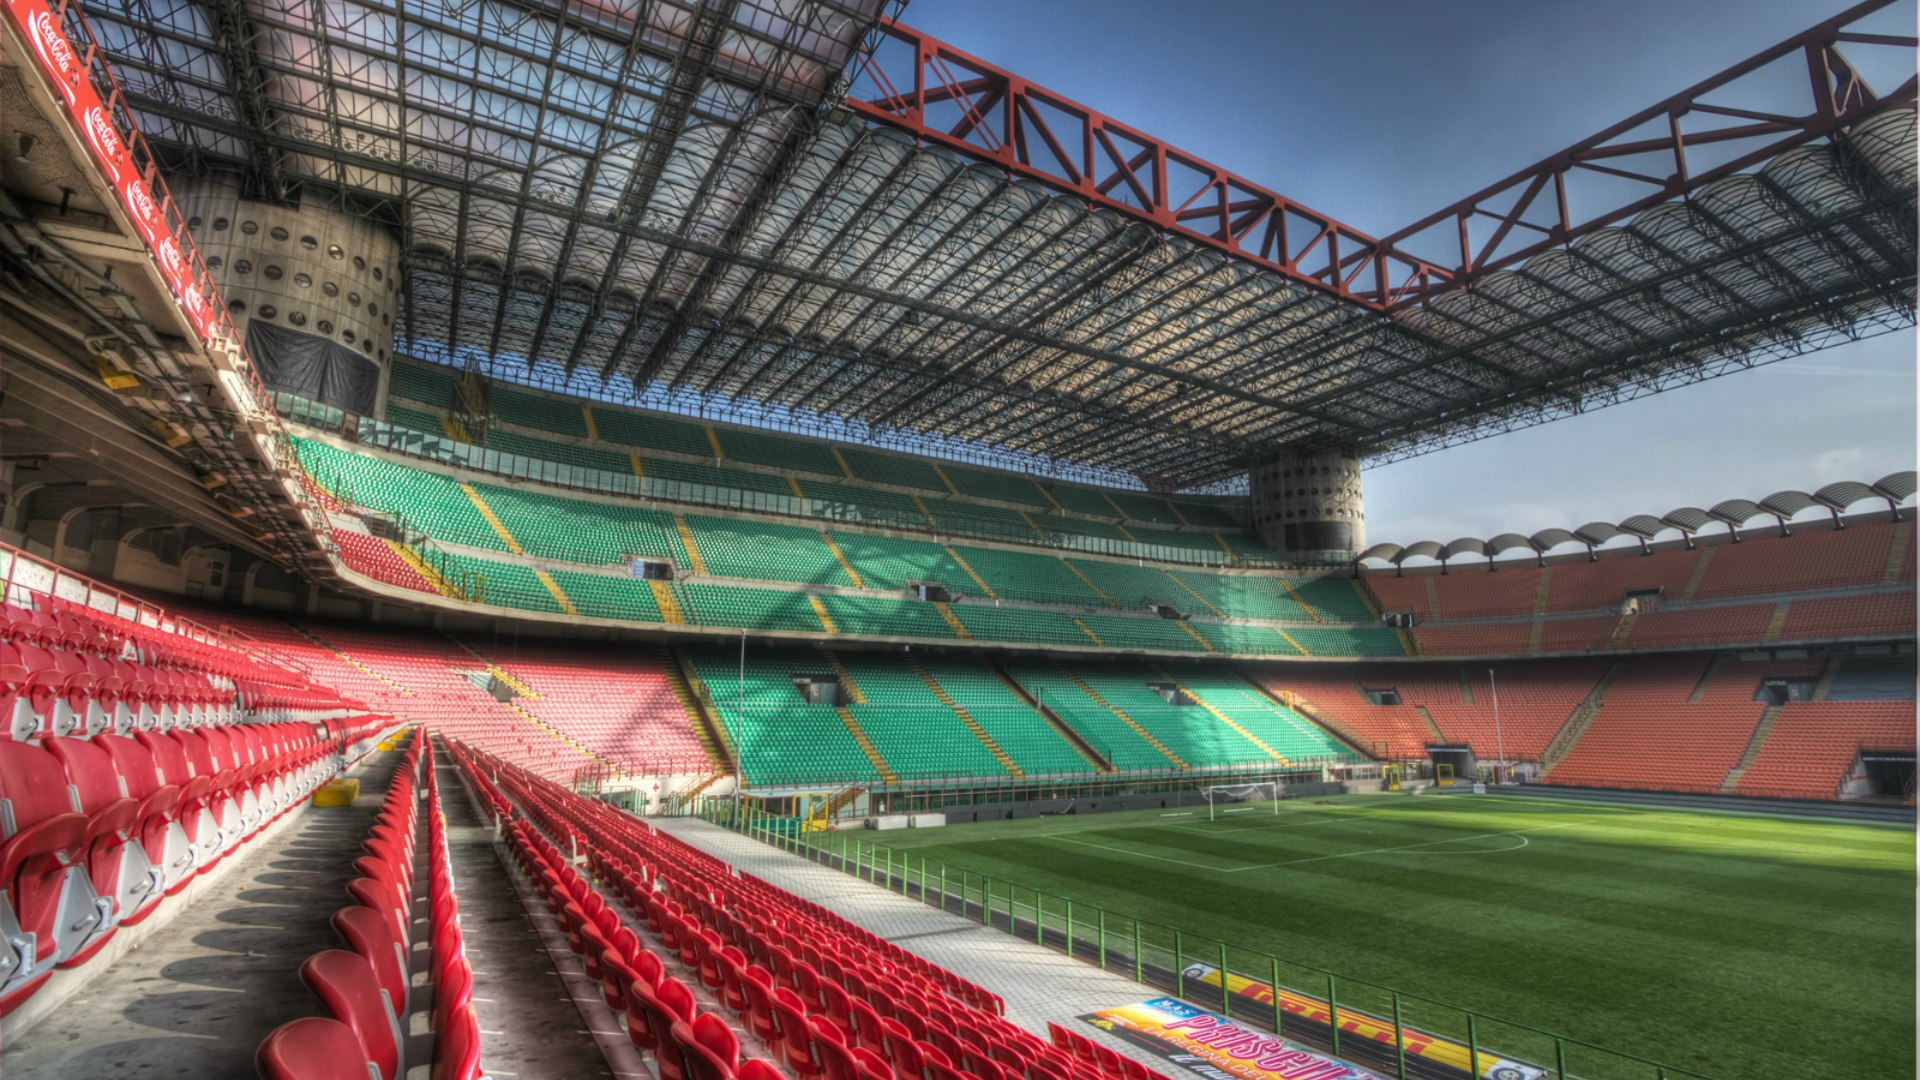 Cities_Milan_San_Siro_stadium_095694_